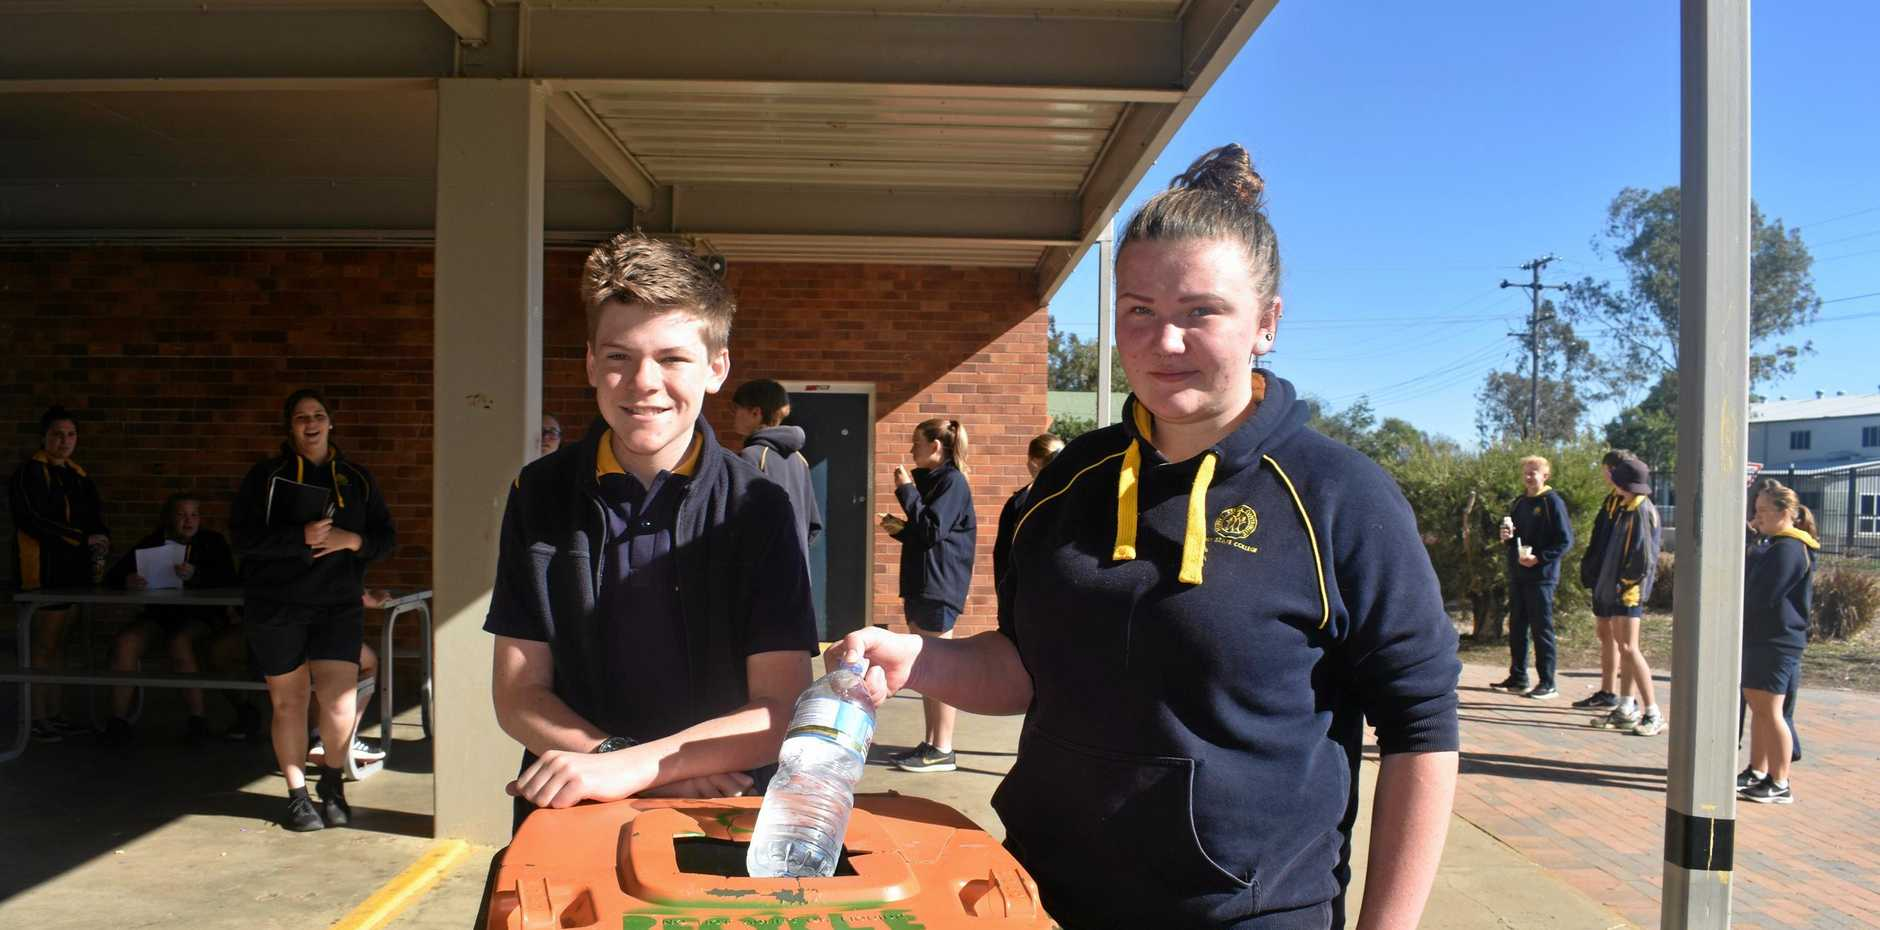 WIN WIN: Environment Committee members, Edward Schefe and Phoebe Cooke helping the environment and raising funds for their school.